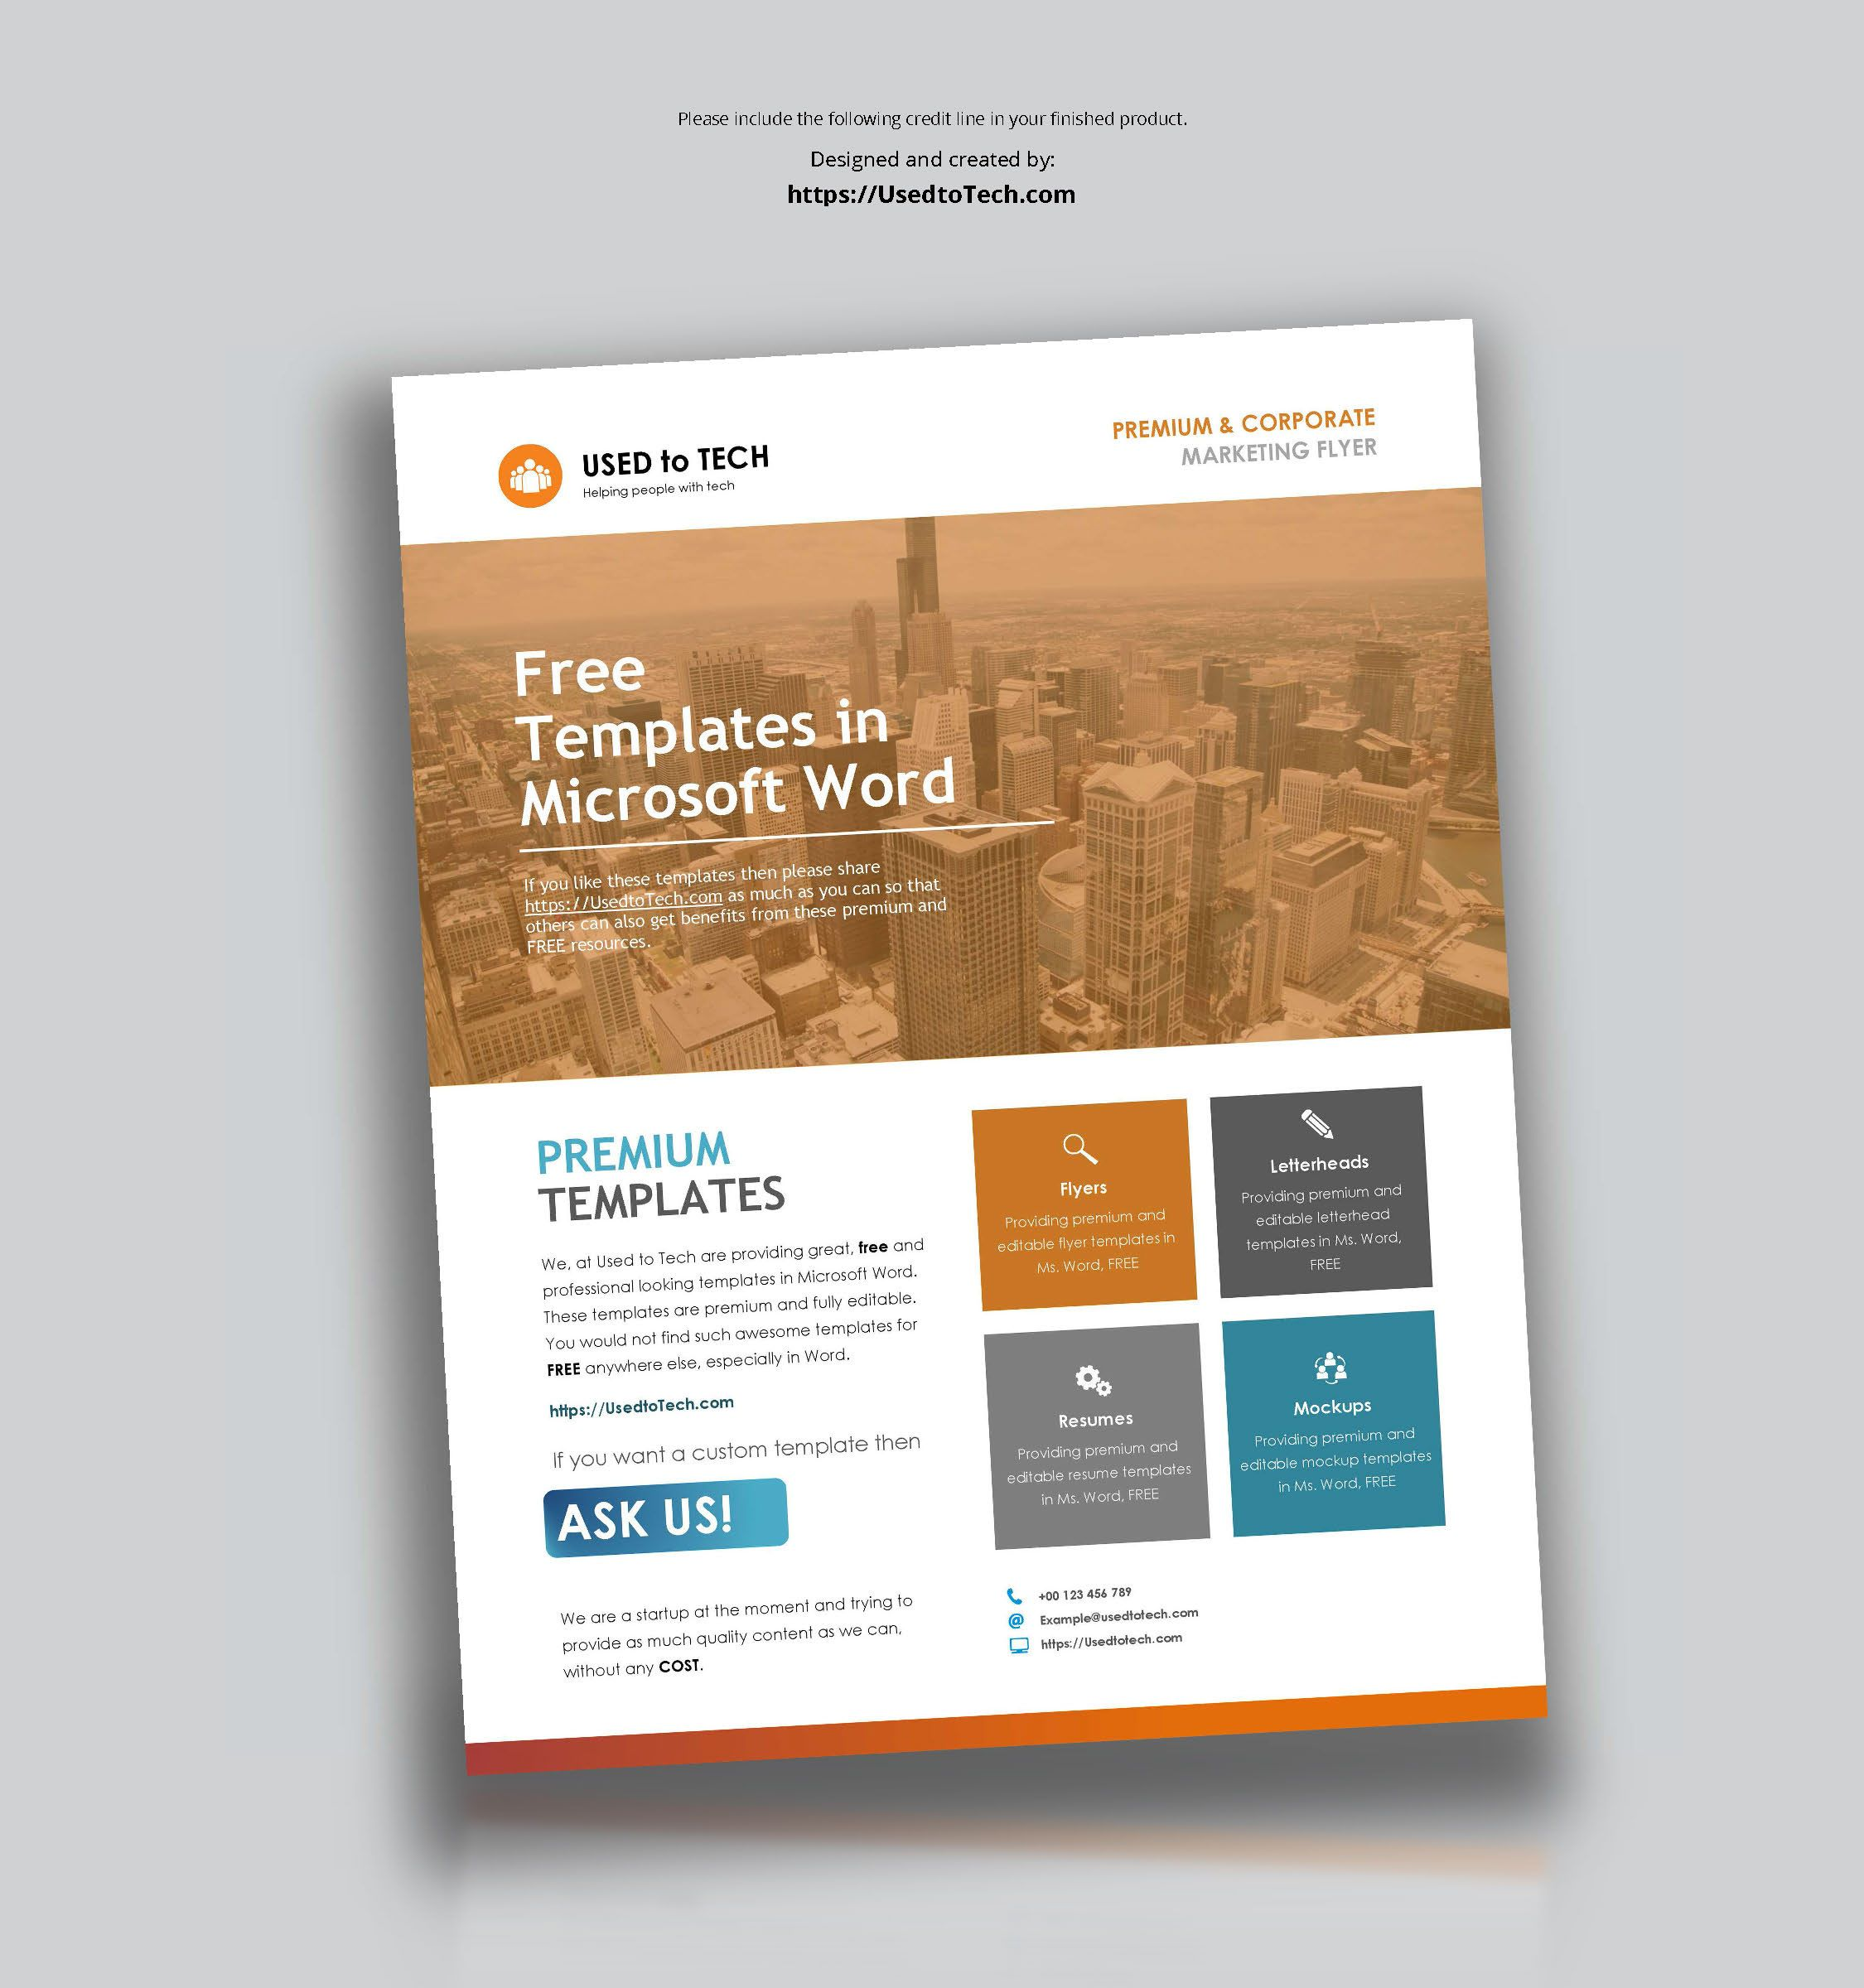 Corporate Flyer Design In Microsoft Word Free Used To Tech Throughout Free Business Brochure Design Template Free Brochure Template Business Flyer Templates Free poster templates for word